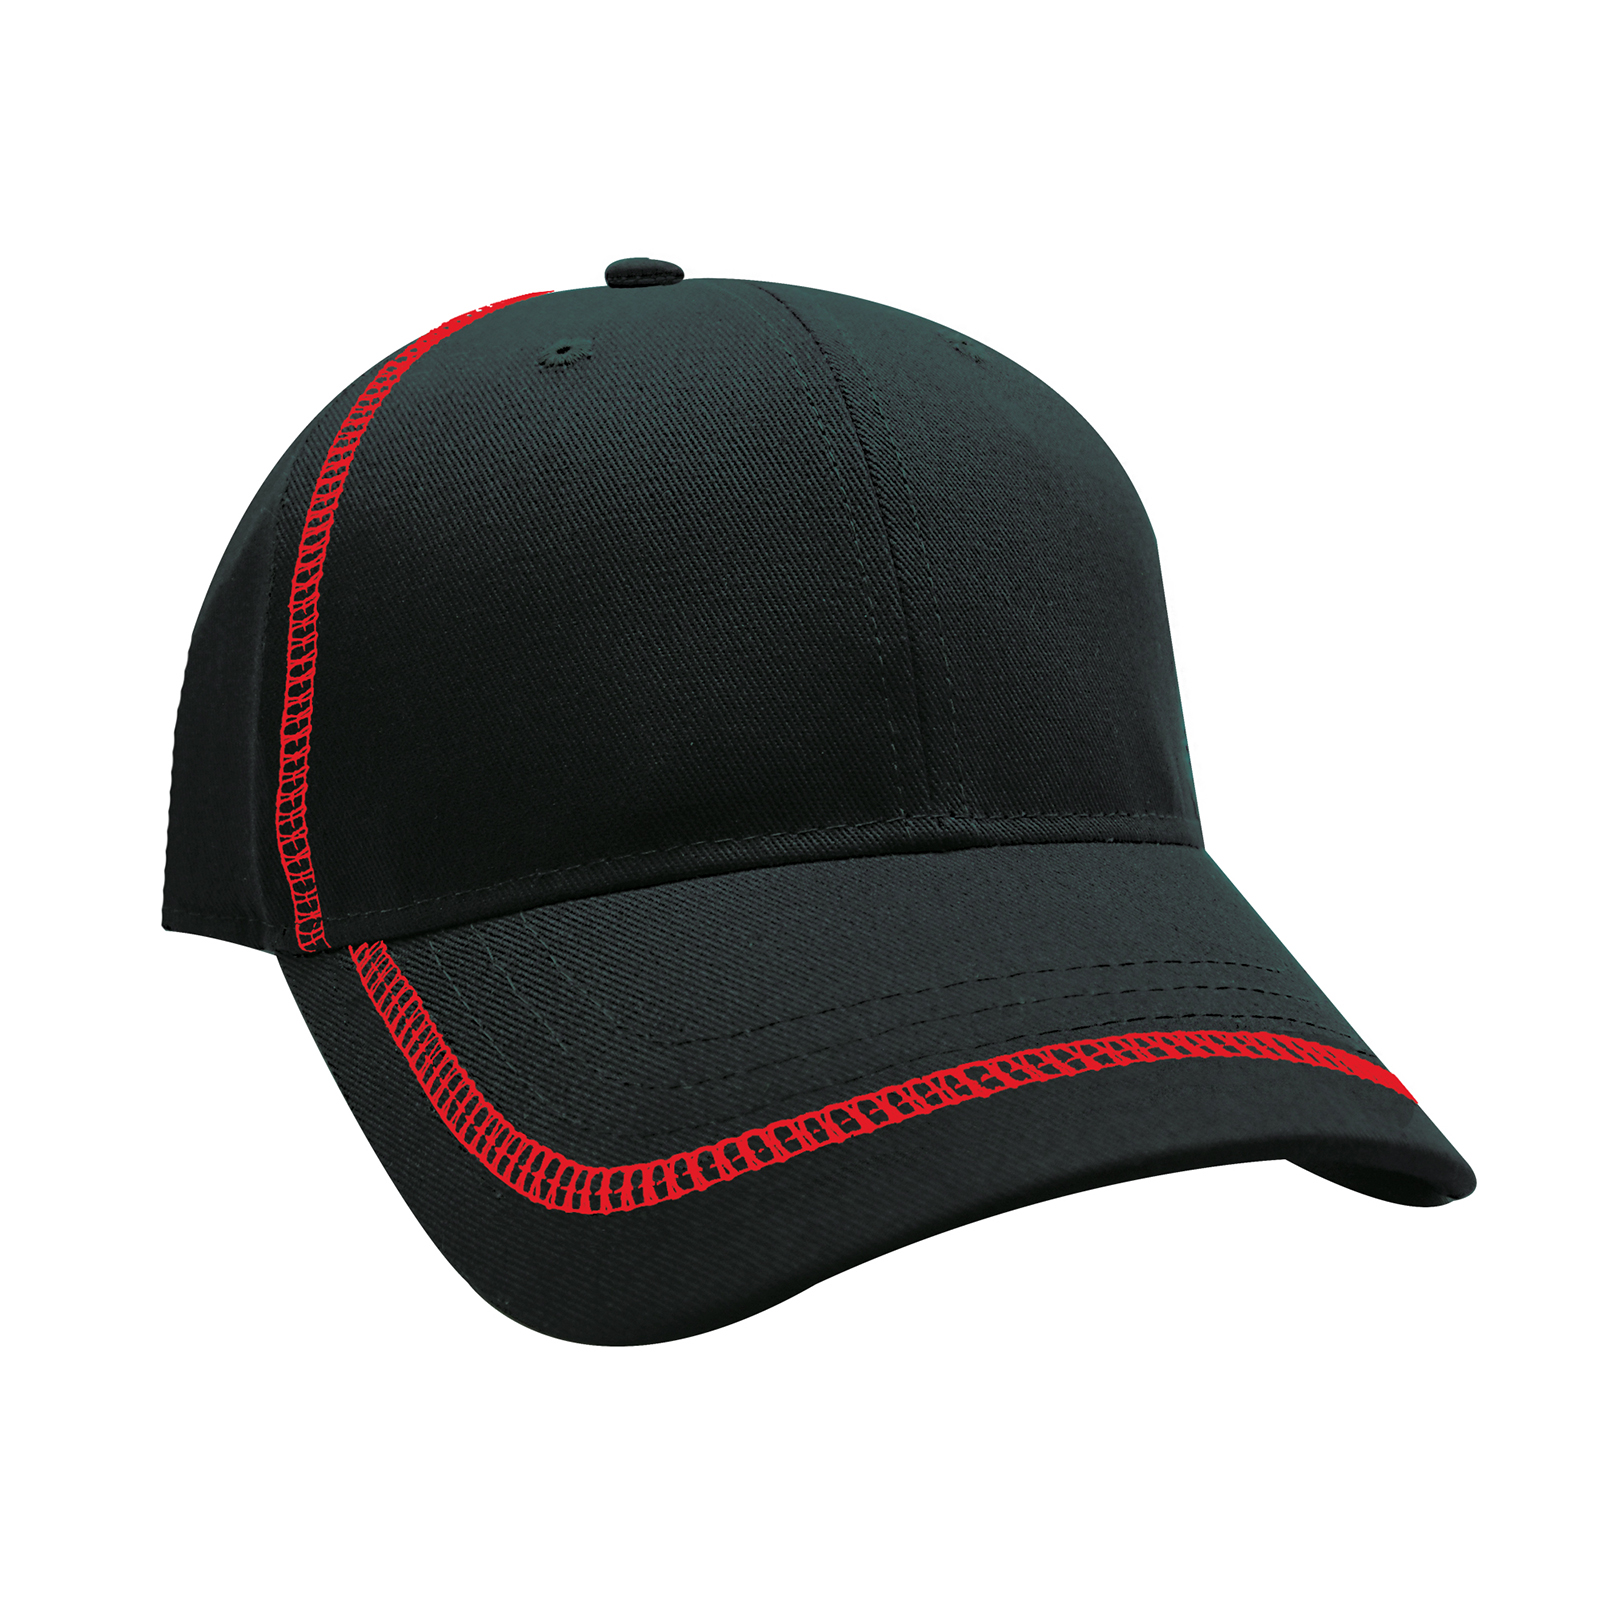 7333ffd420ac1c Structured Premium Cotton Twill Cap With Contrasting Color Stitching On  Crown And Peak